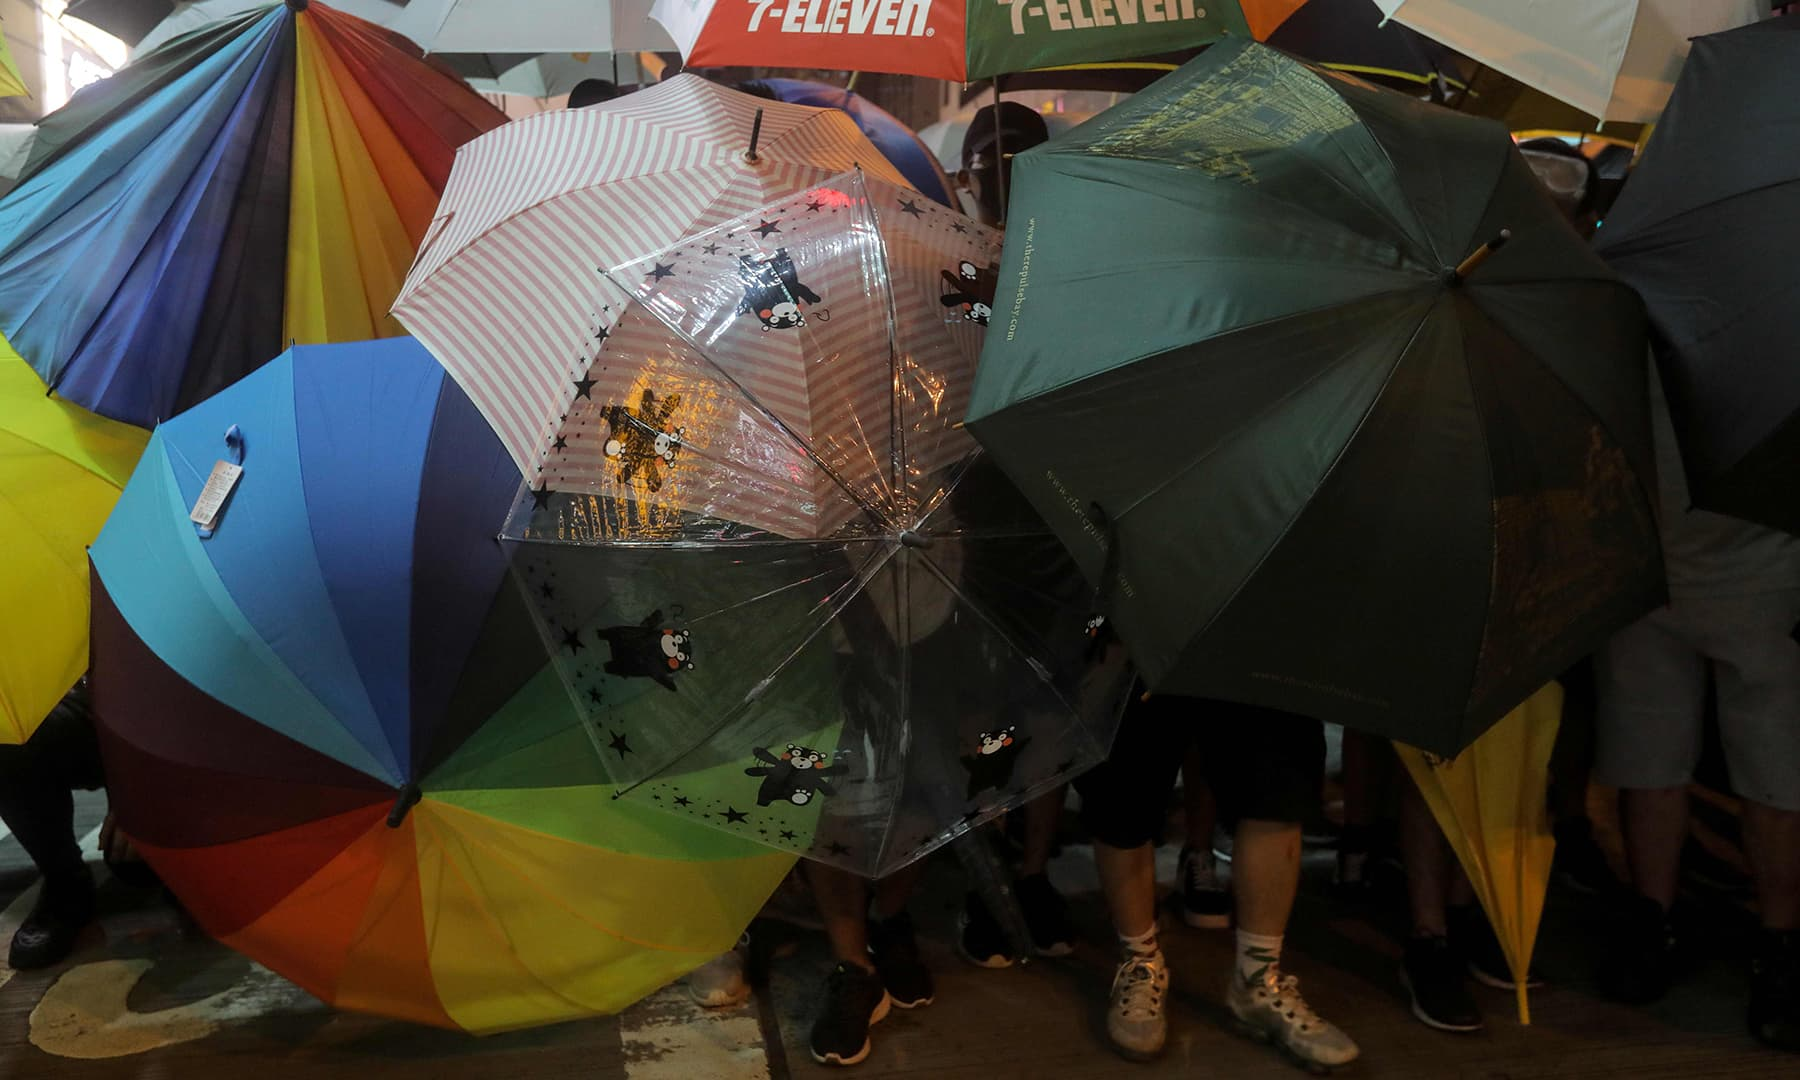 Protesters carry umbrellas to protect themselves as they face the police. — AFP